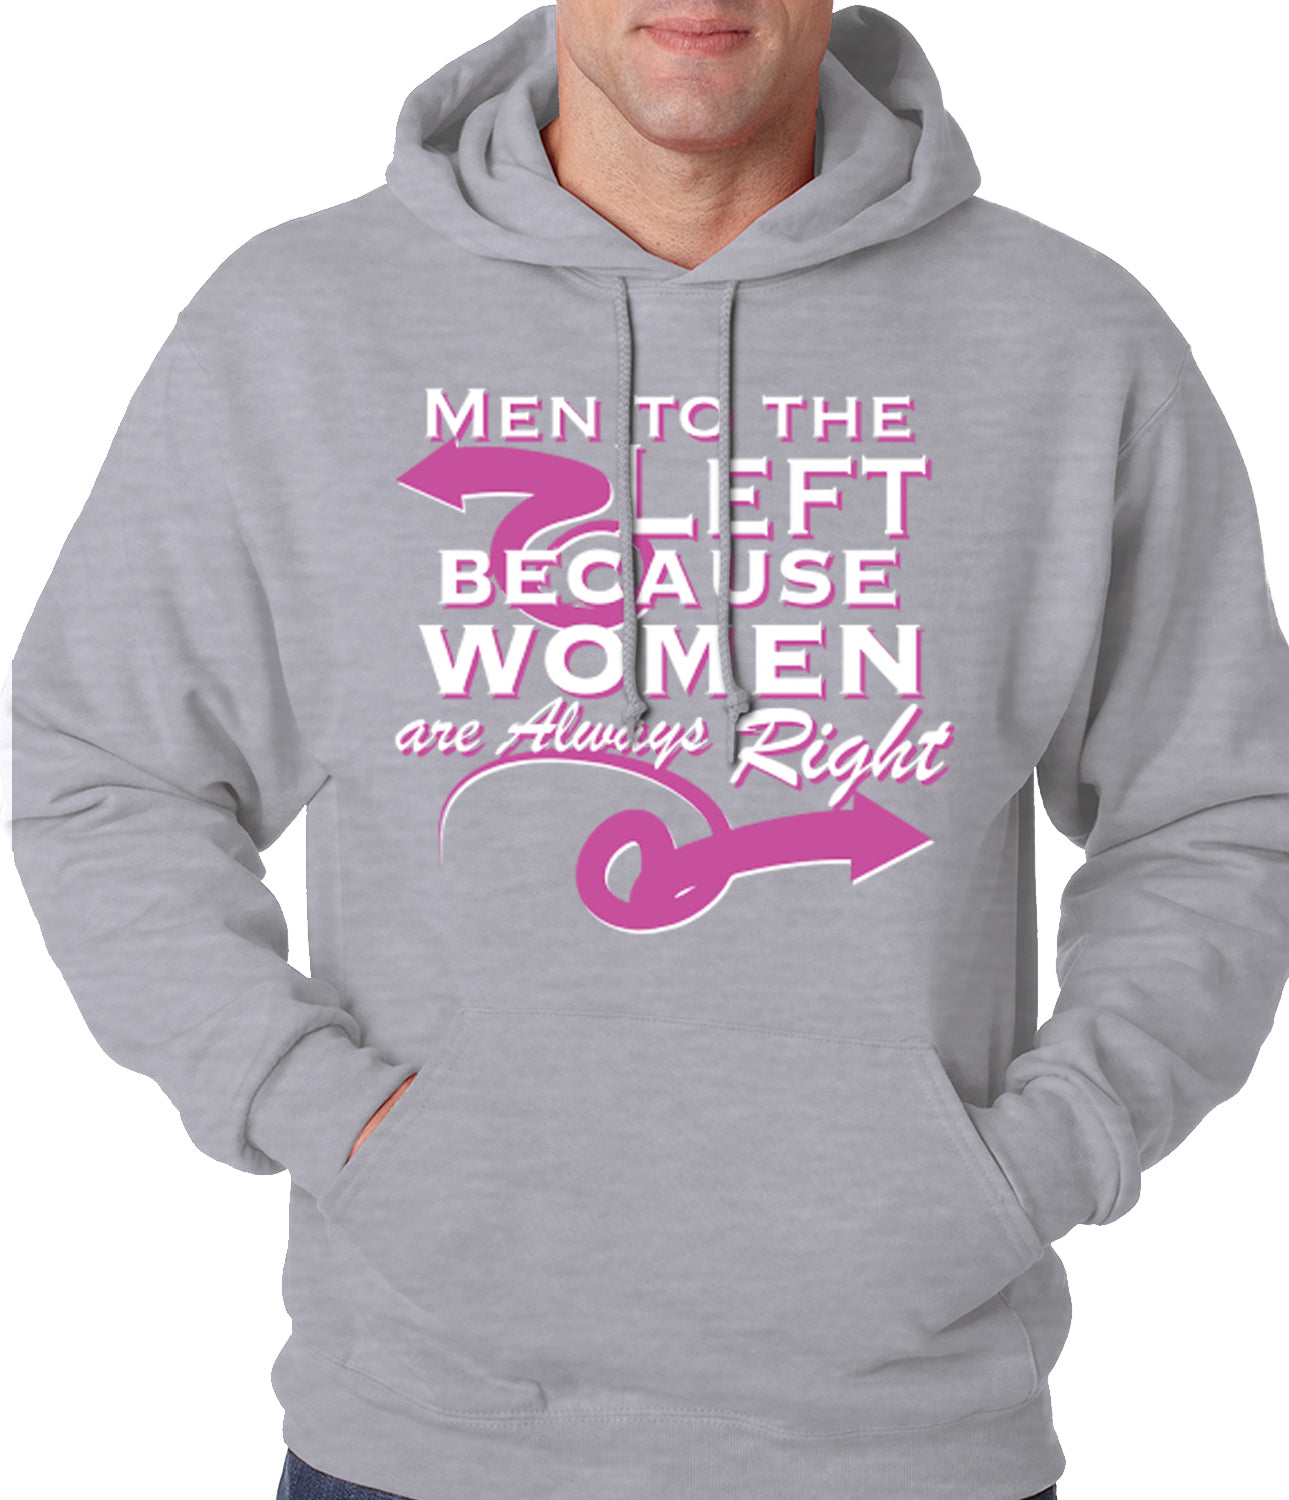 Men To the Left, Because Women Are Always Right Adult Hoodie